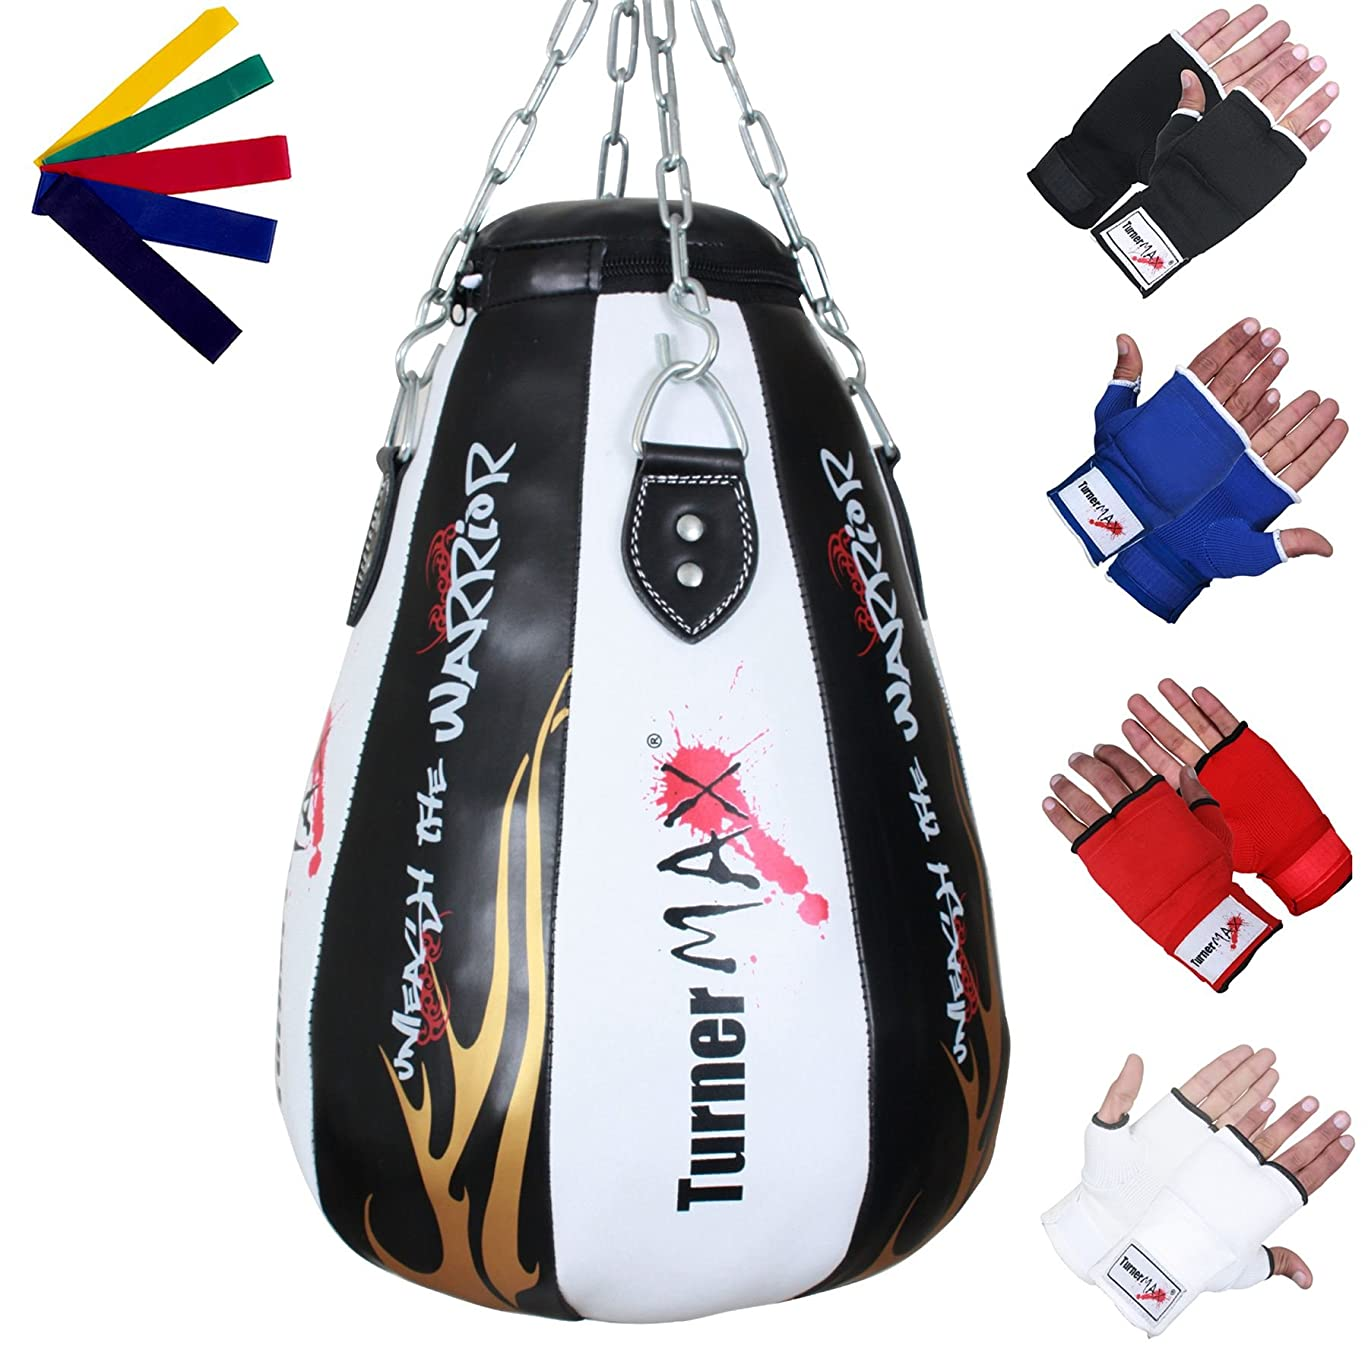 TurnerMAX Maize Bag Vinyl White/Black with Inner Gloves and Stretch Band